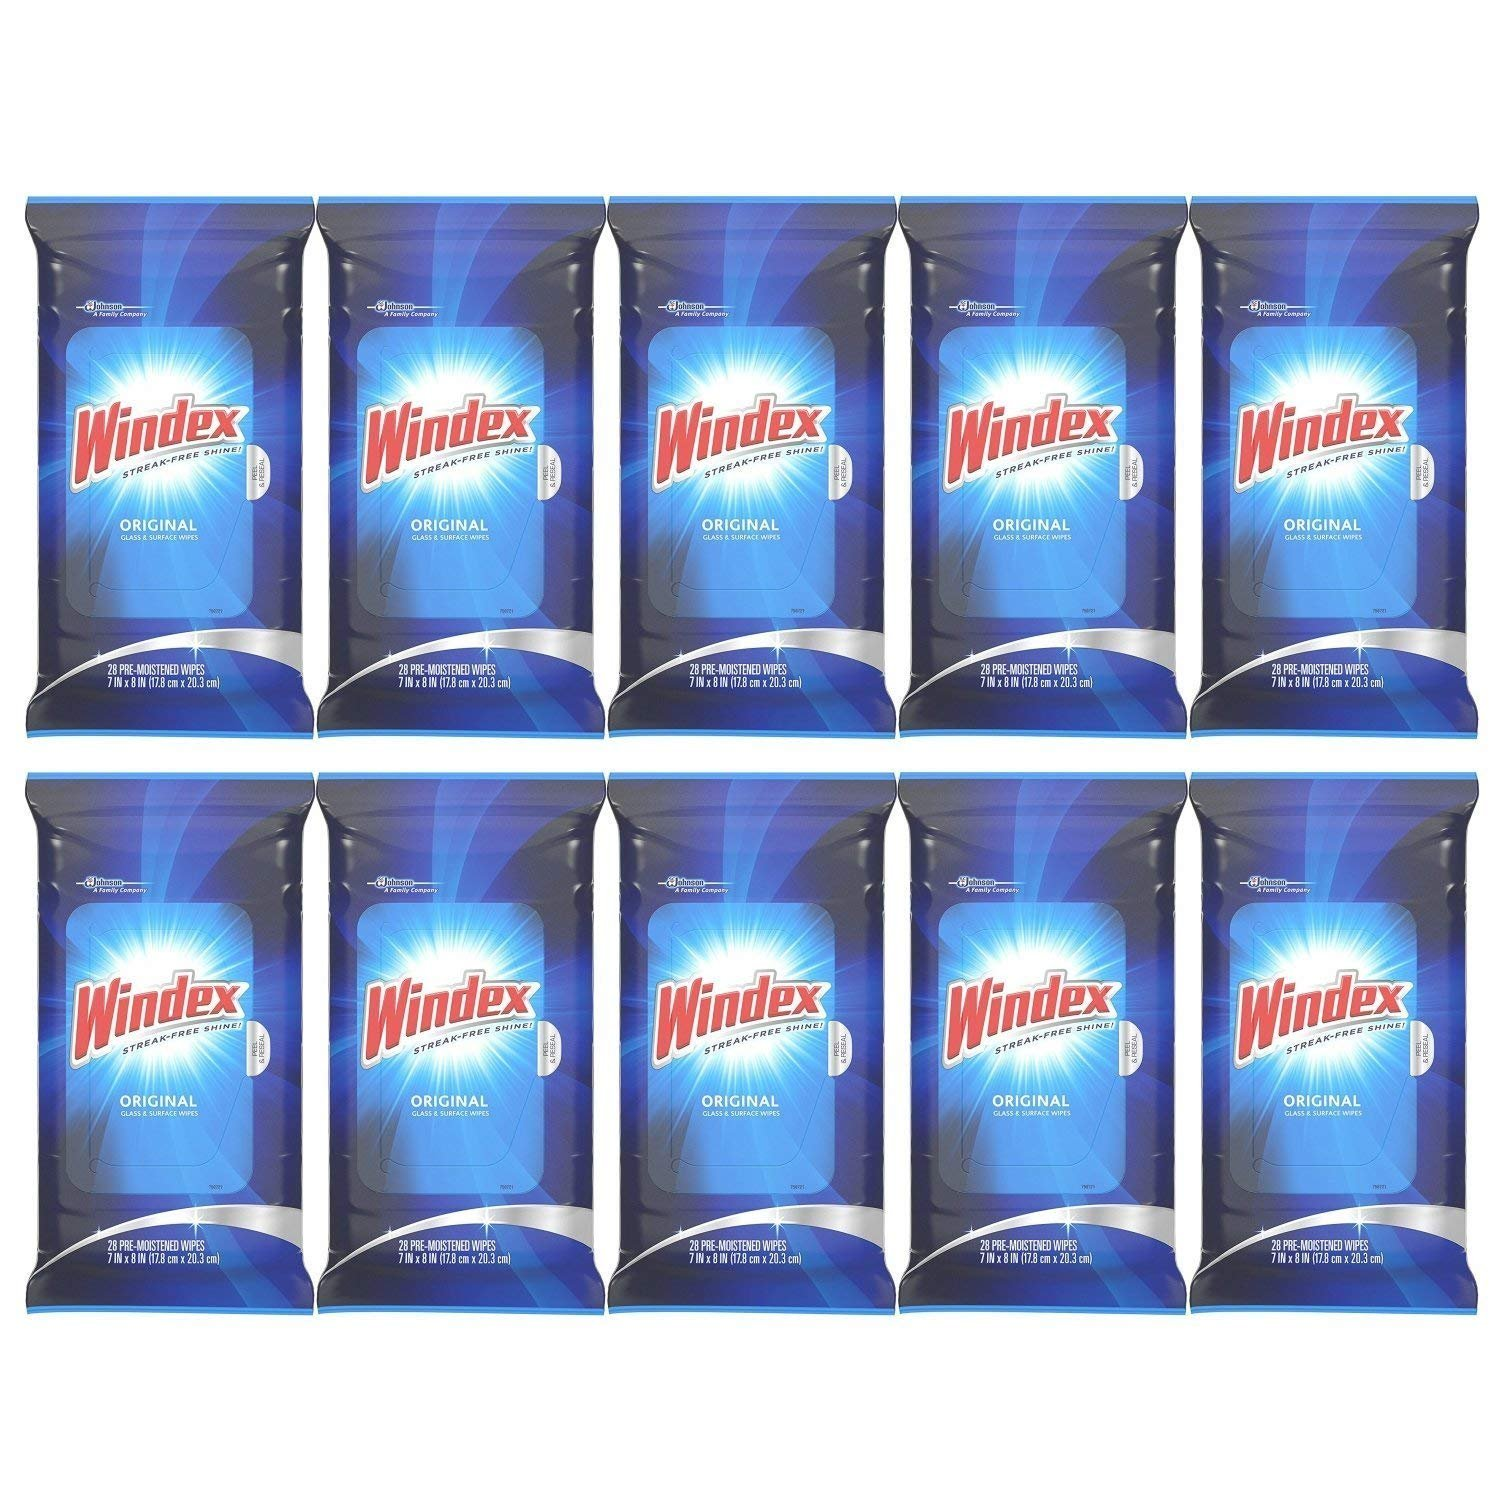 Windex Flat Pack Wipes, 28 CT (10 PACK) by Windex (Image #1)